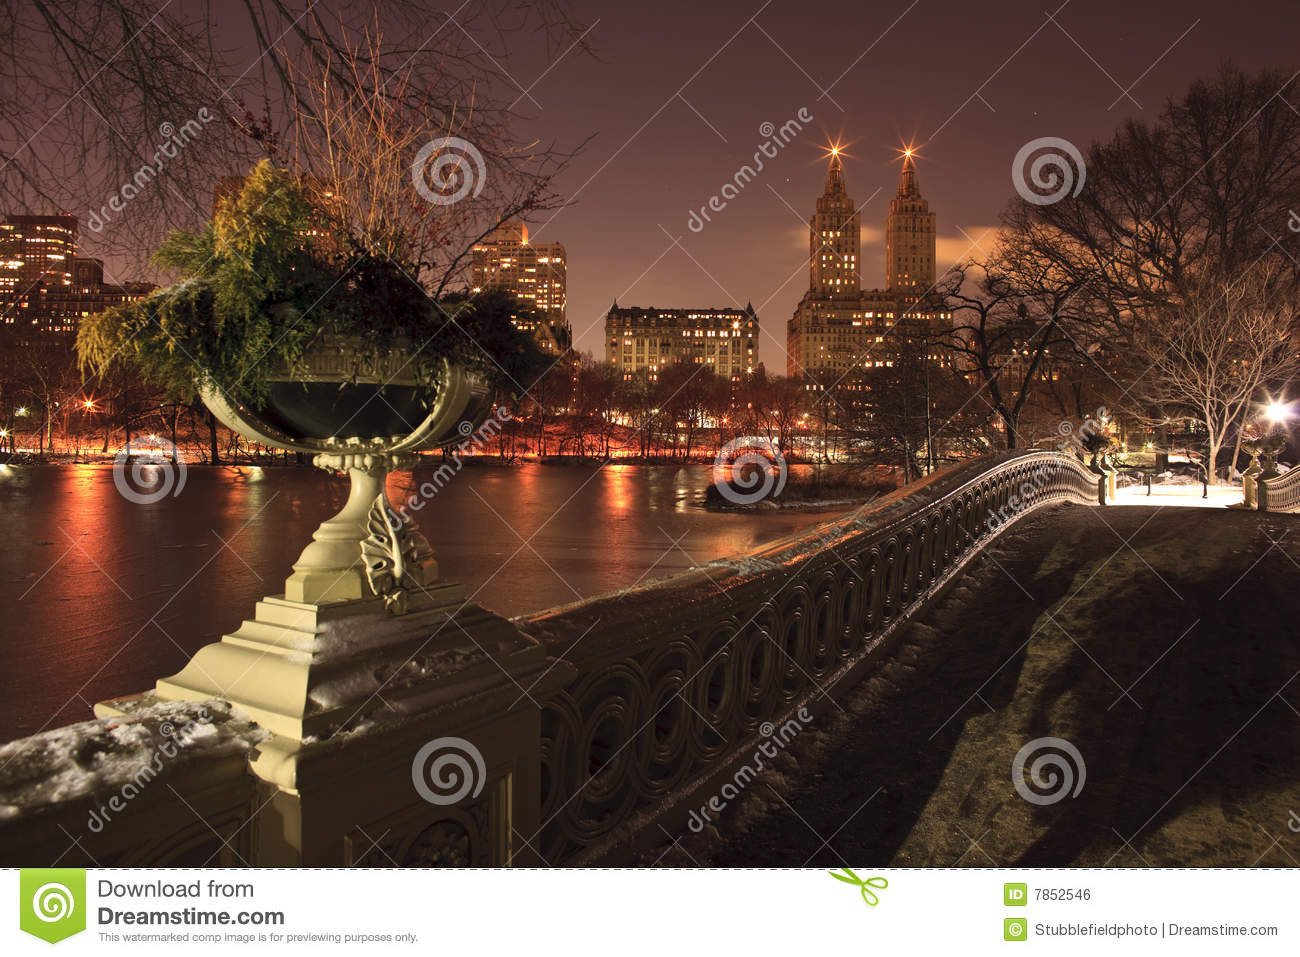 city tree planter with Royalty Free Stock Image View Central Park West Lake Bow Bridge Image7852546 on West Synthetic Turf San Marcos further Brooklyn Oasis A City Roof Garden Before And After moreover Colombo Airport furthermore Royalty Free Stock Image View Central Park West Lake Bow Bridge Image7852546 additionally 101 Loai Hoa Cay Day Leo Trong Lam Mat Nha Mua He.